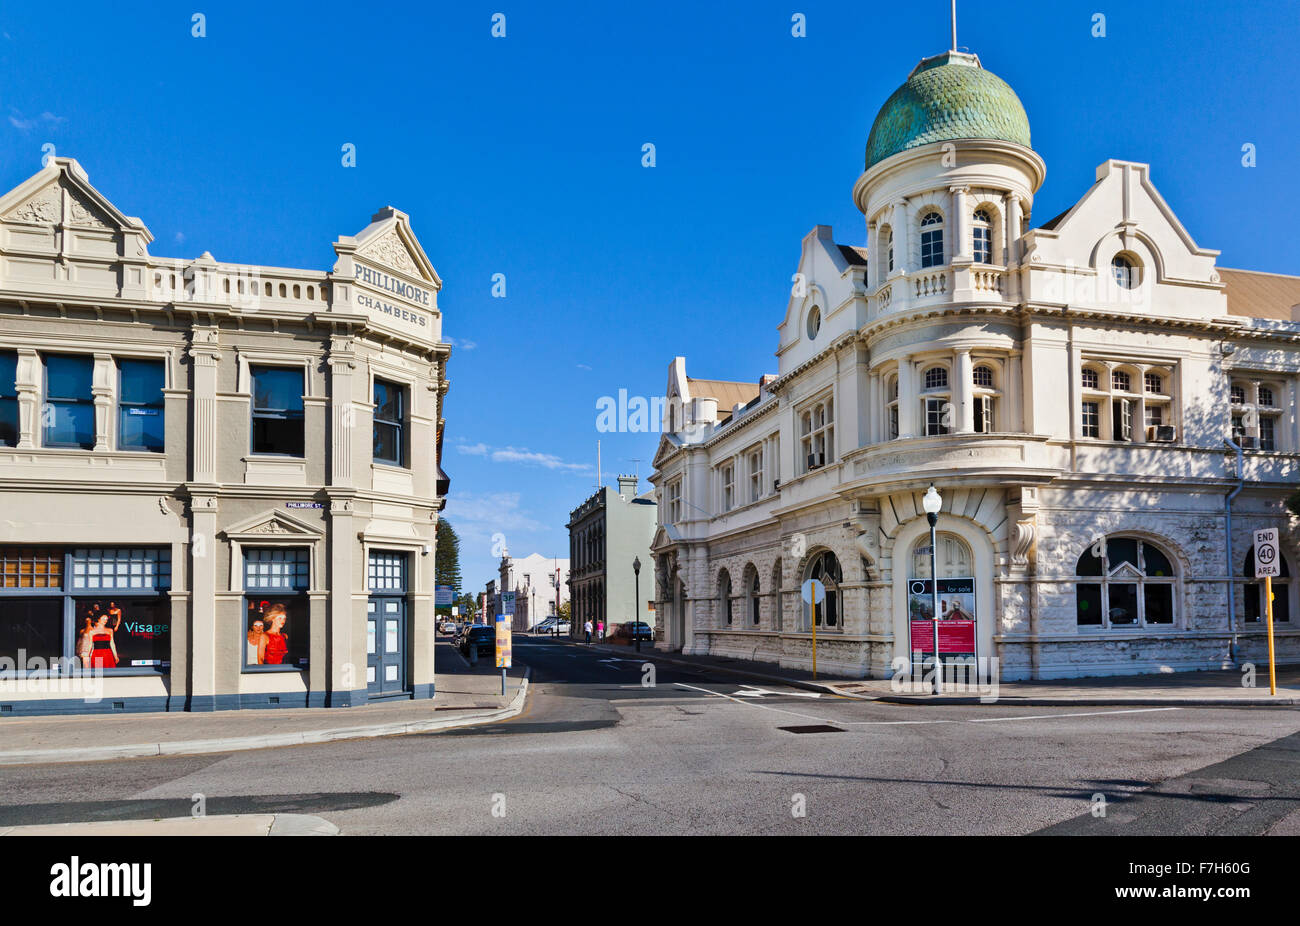 Australia, Western Australia, Fremantle, heritage buildings in the West End Conservation area - Stock Image